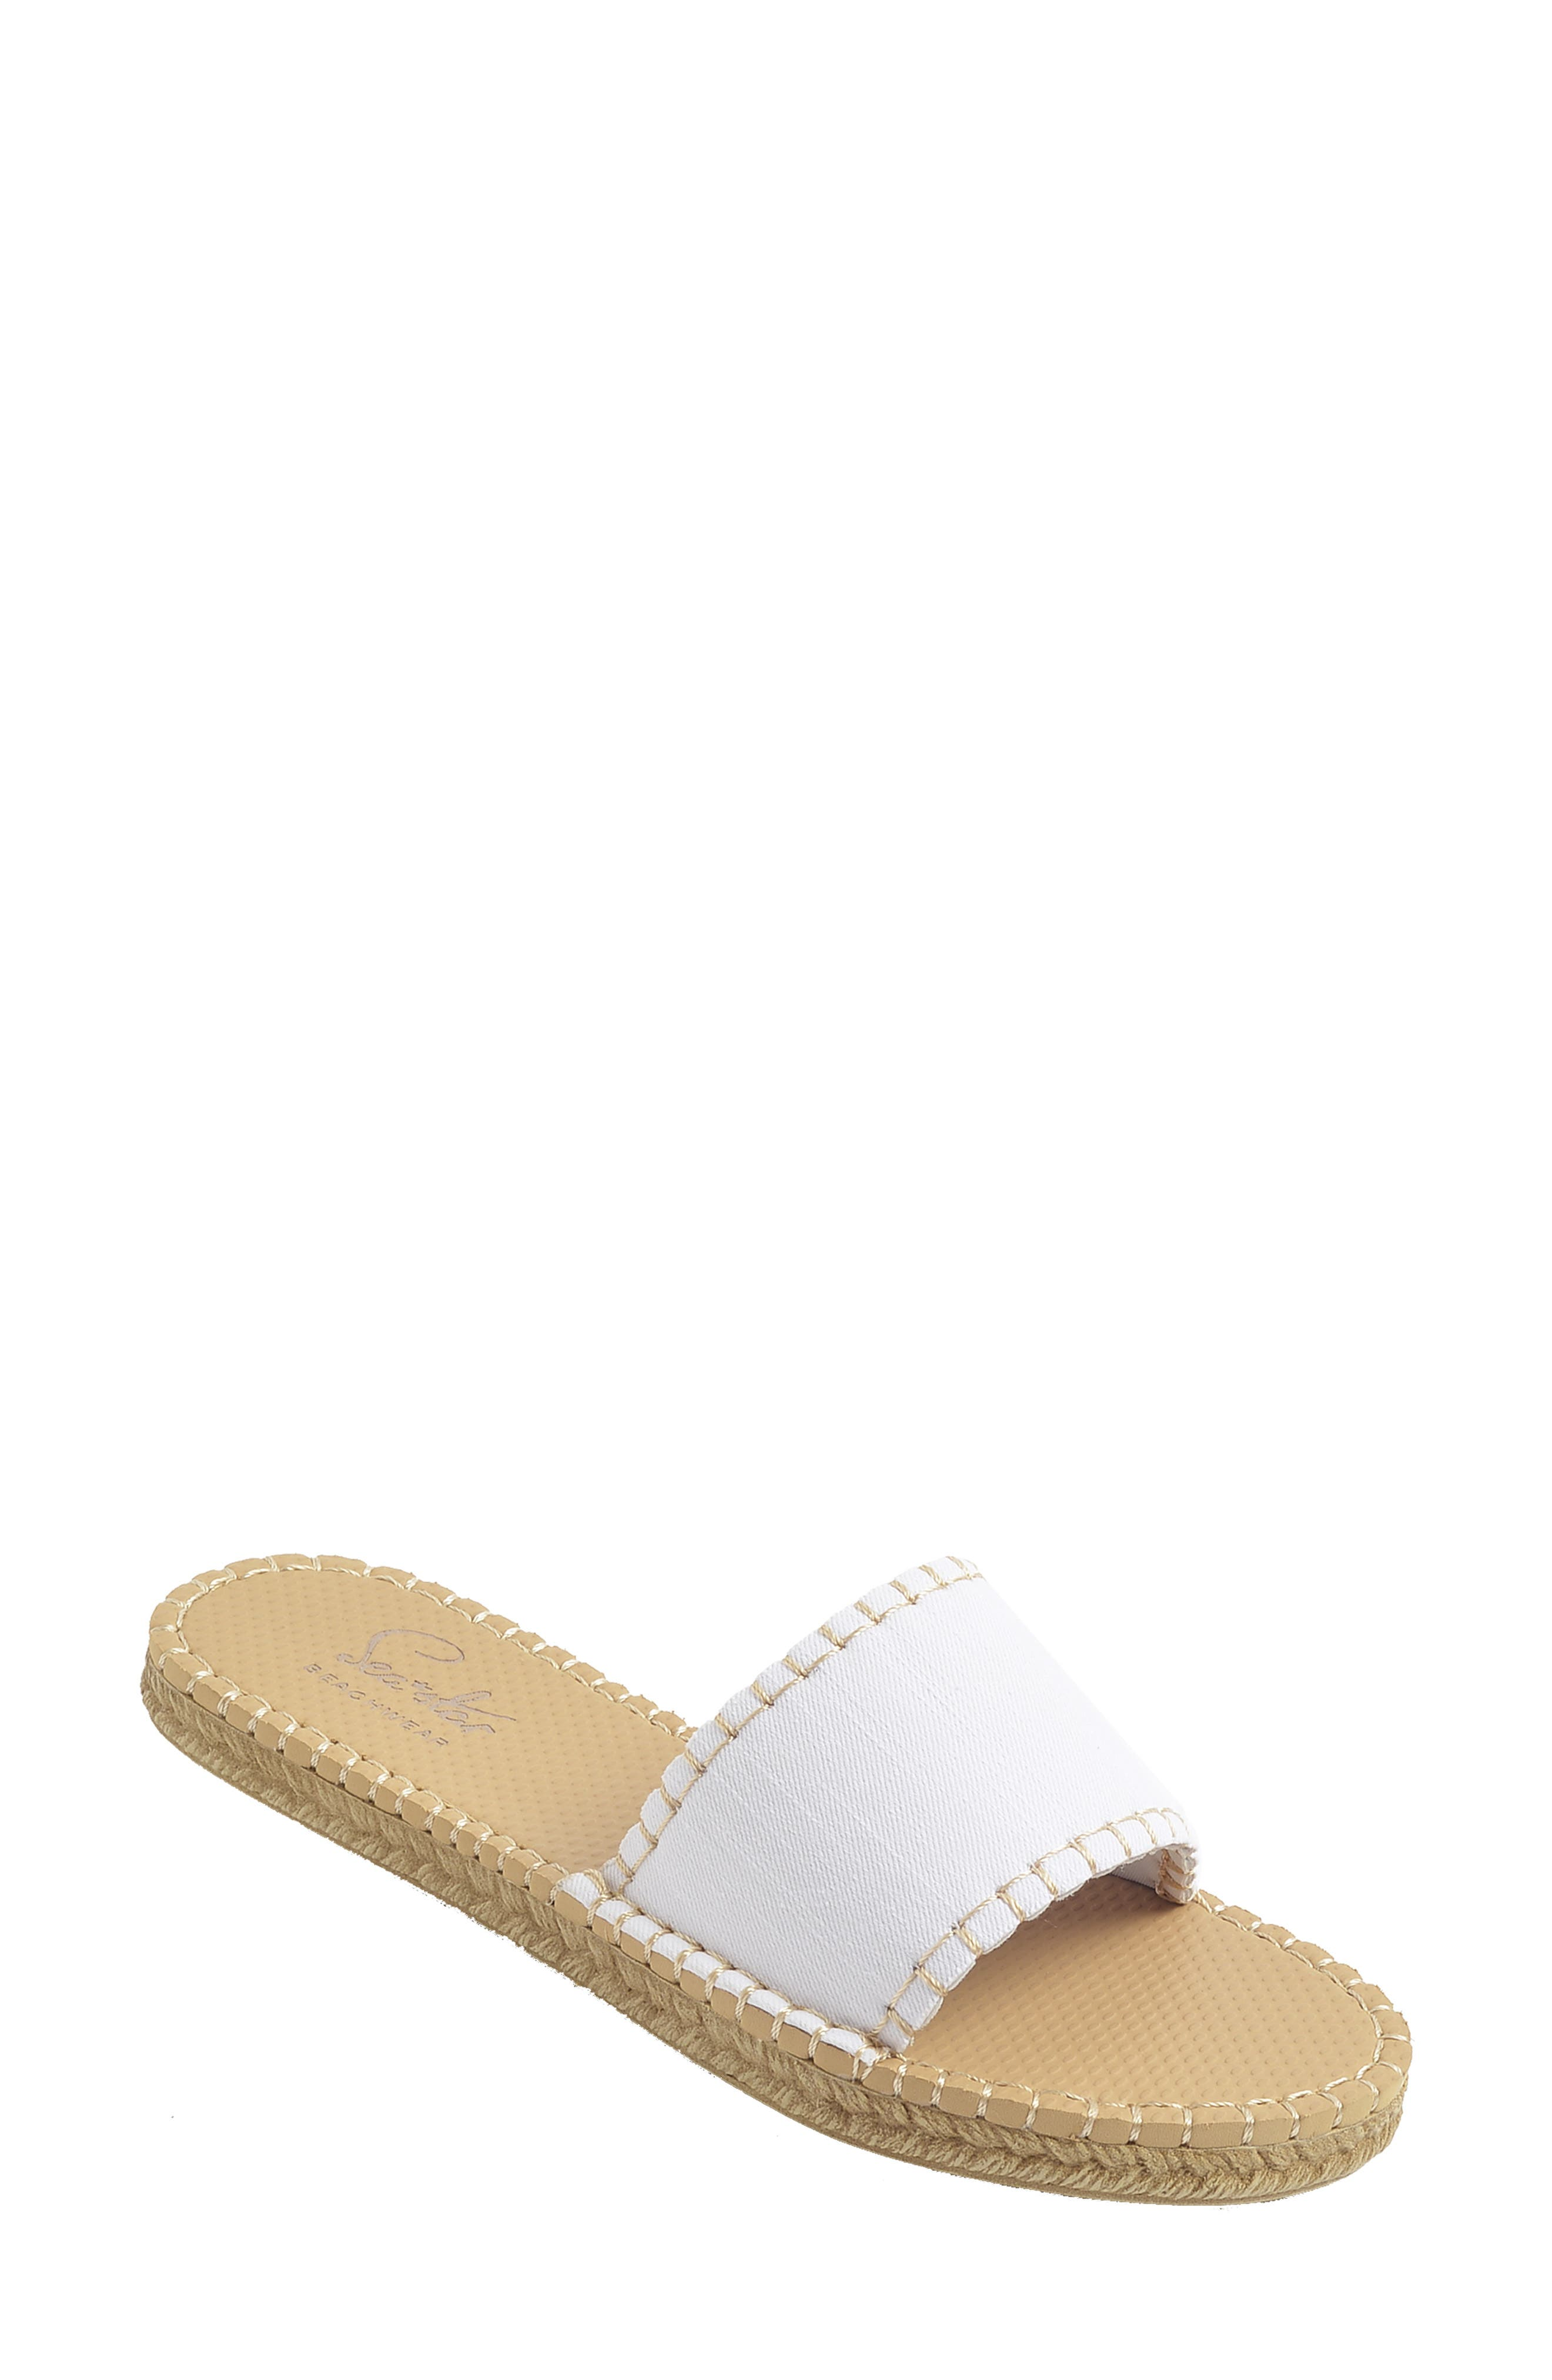 1960s Style Clothing & 60s Fashion Womens Sea Star Beachwear Cabana Water Resistant Espadrille Slide Sandal Size 8 M - White $44.95 AT vintagedancer.com